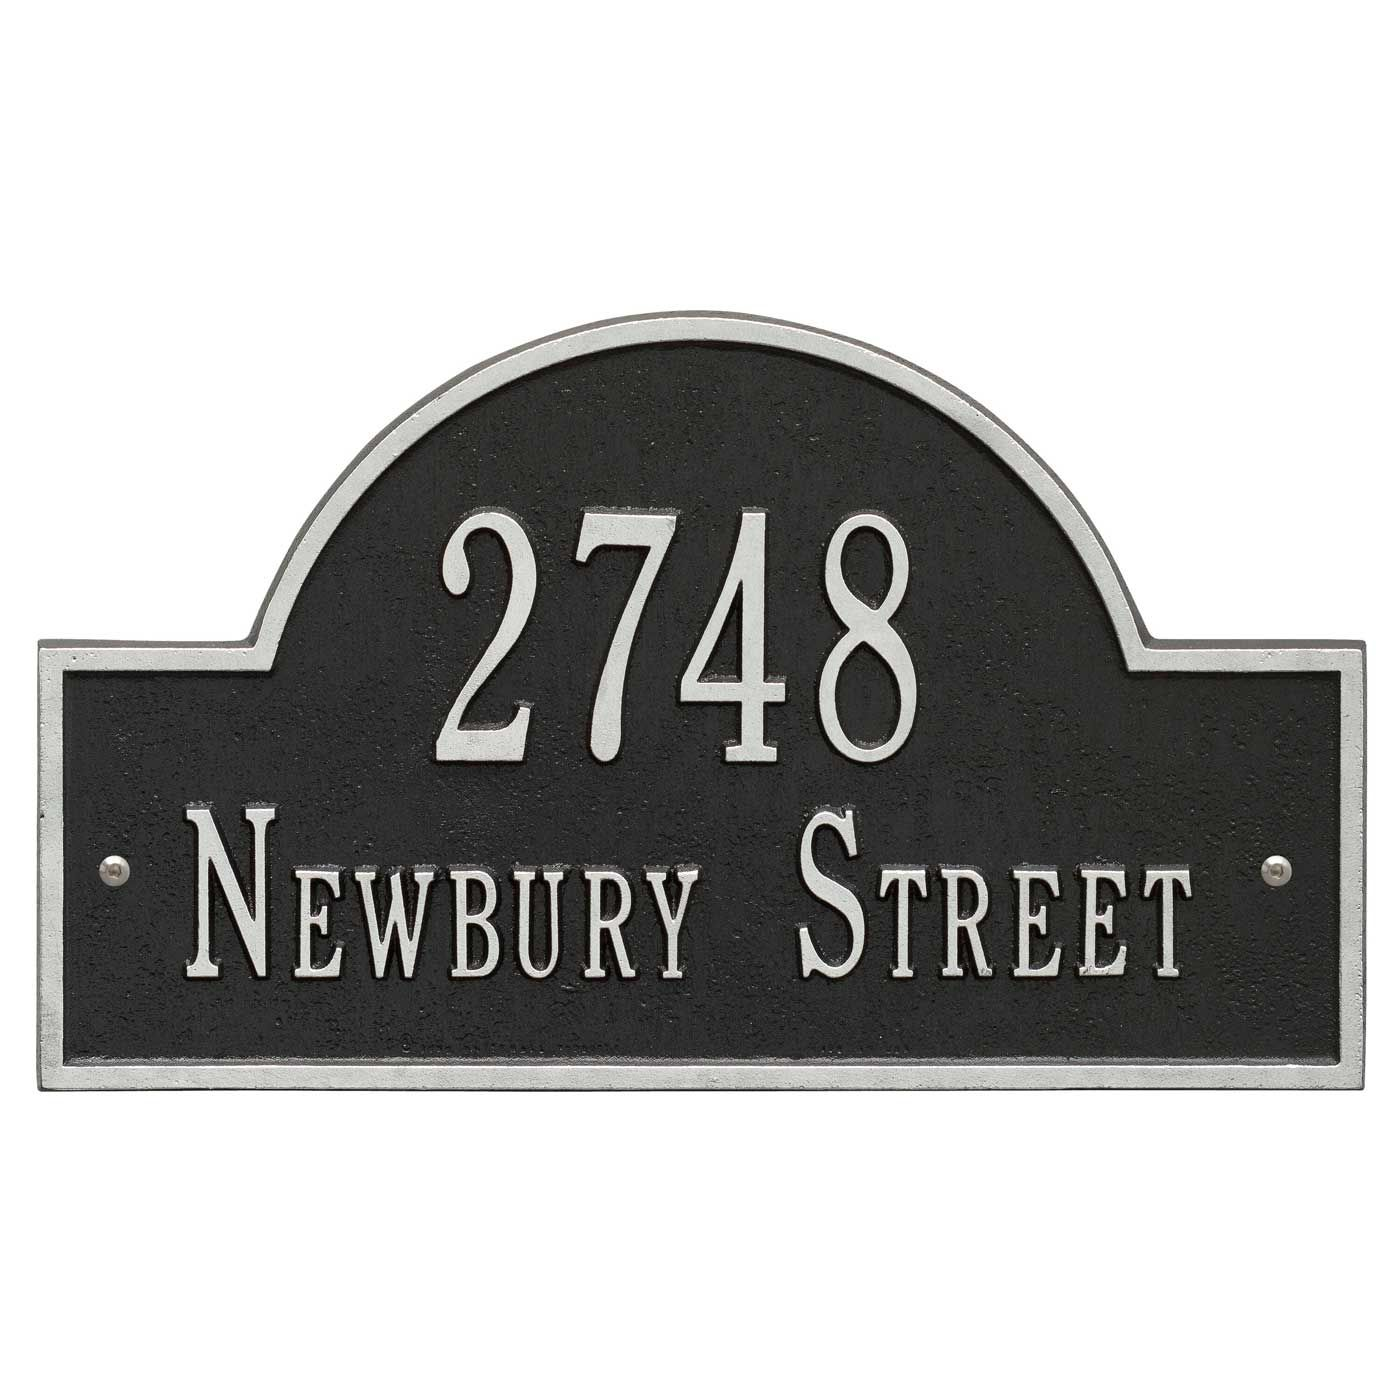 2aafbe6ce83 whitehall-arch-marker-wall-mount-address-sign-143.jpg